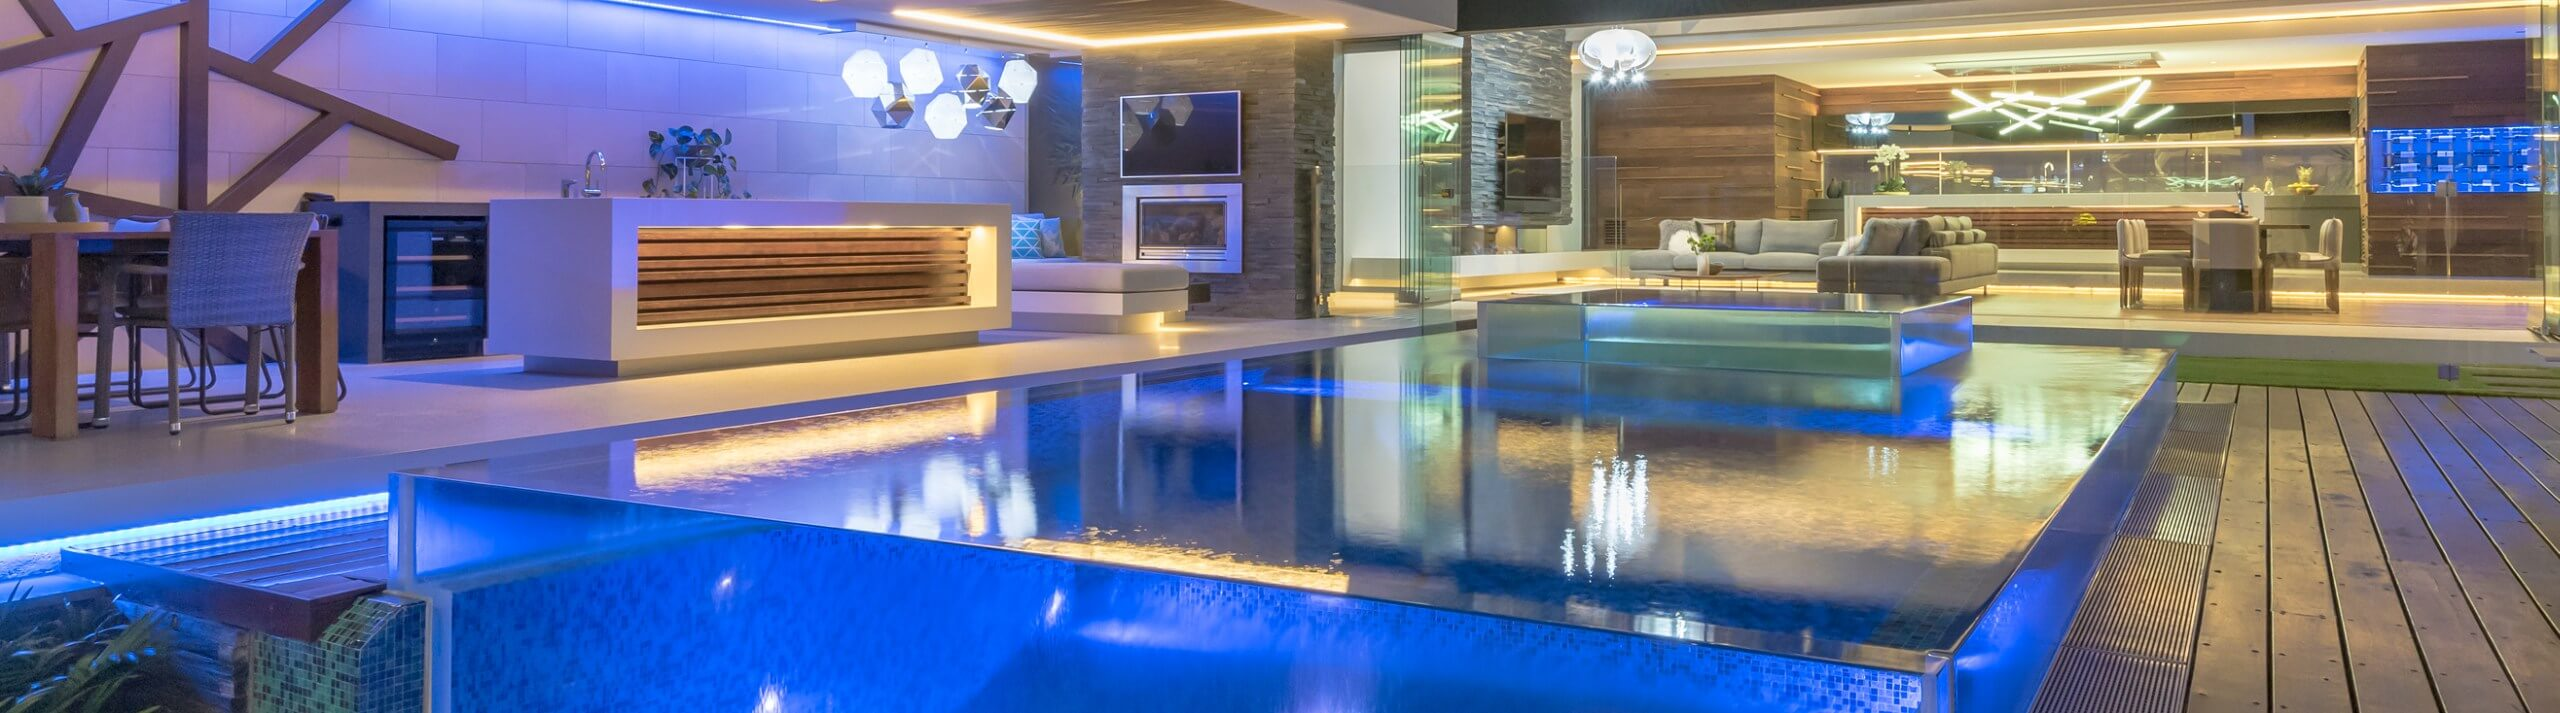 759b0ceb30c Natural-Pools-Awards-for-Best-Swimming-Pool-Installations.jpg ...